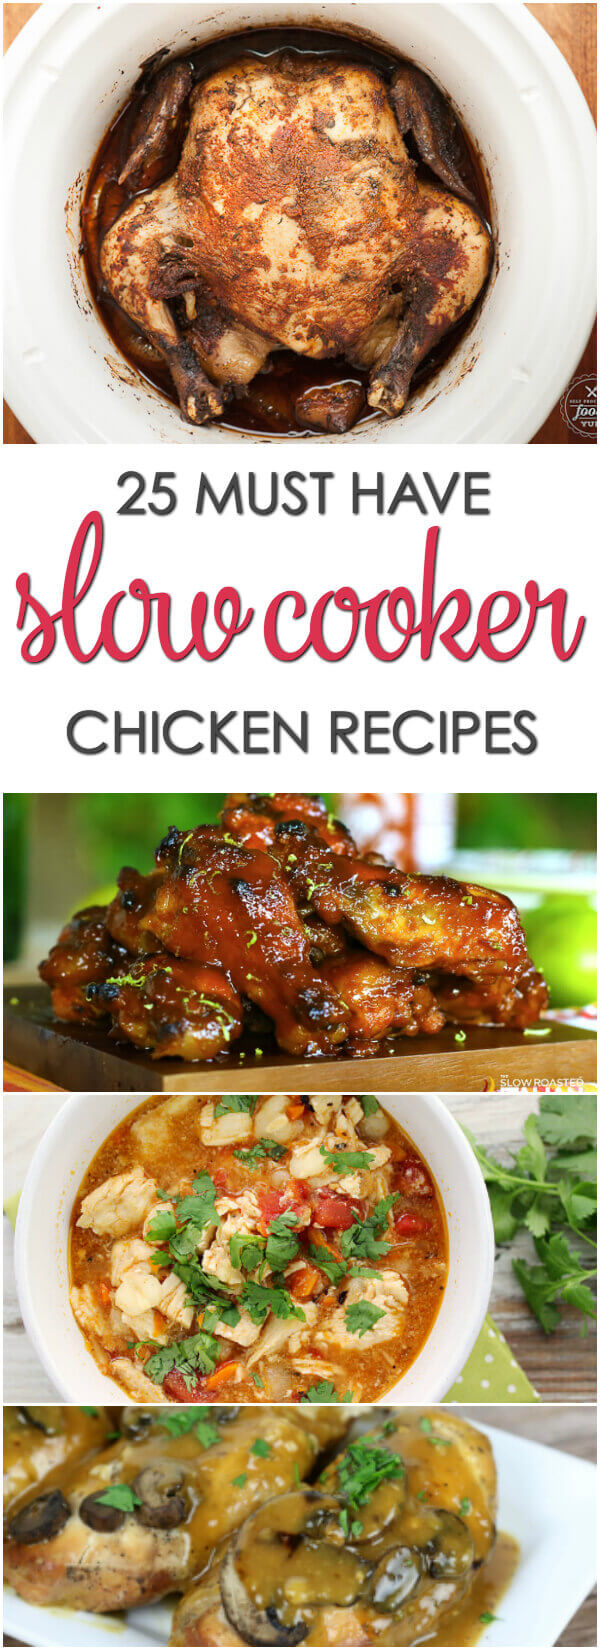 25 Slow Cooker Chicken Recipes - these easy crock pot recipes for chicken are a must have for every cook